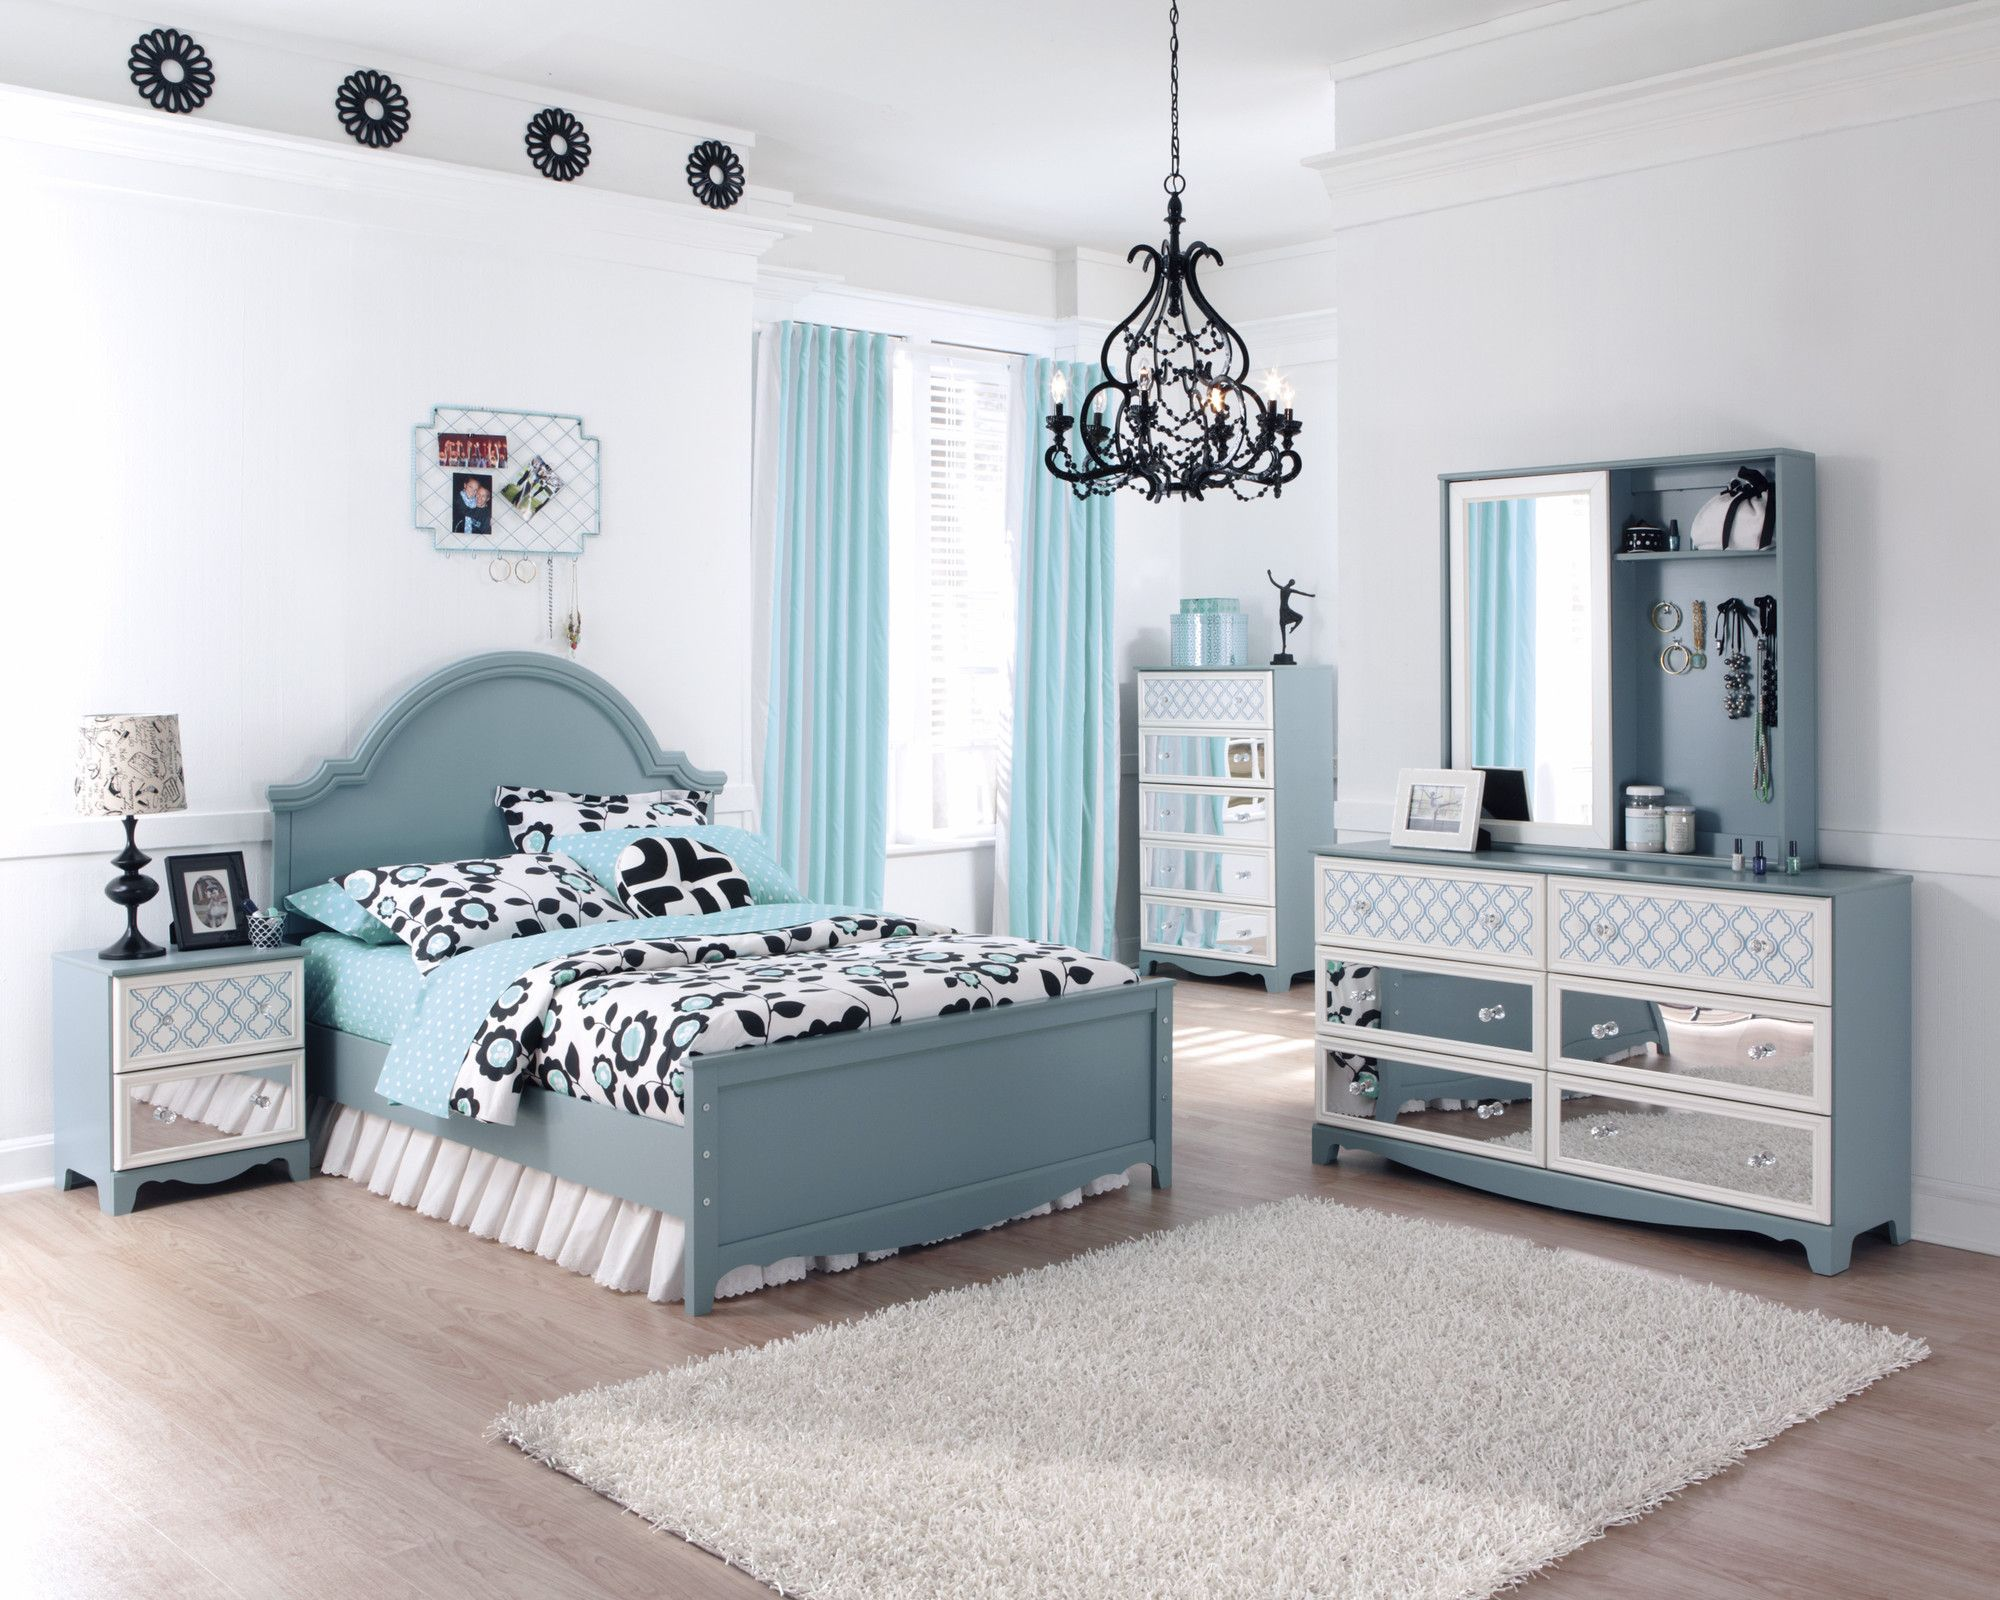 Bedroom Impressive Wayfair Beds For Bedroom Furniture: Online Home Store For Furniture, Decor